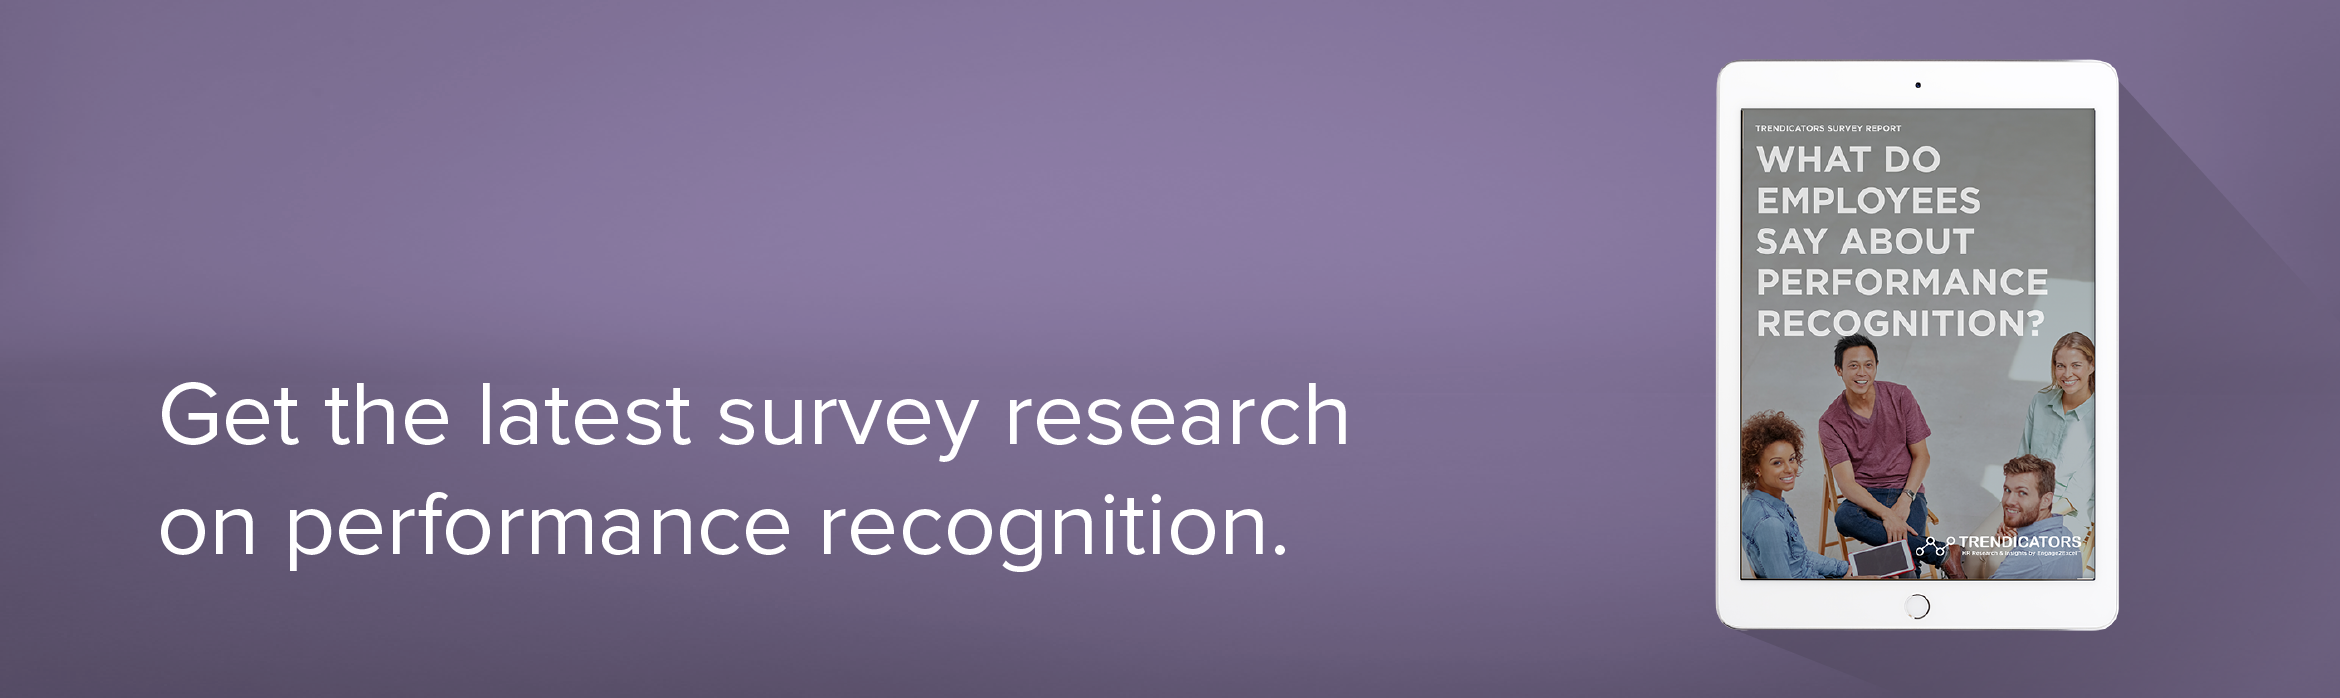 Get the latest survey research on performance recognition.